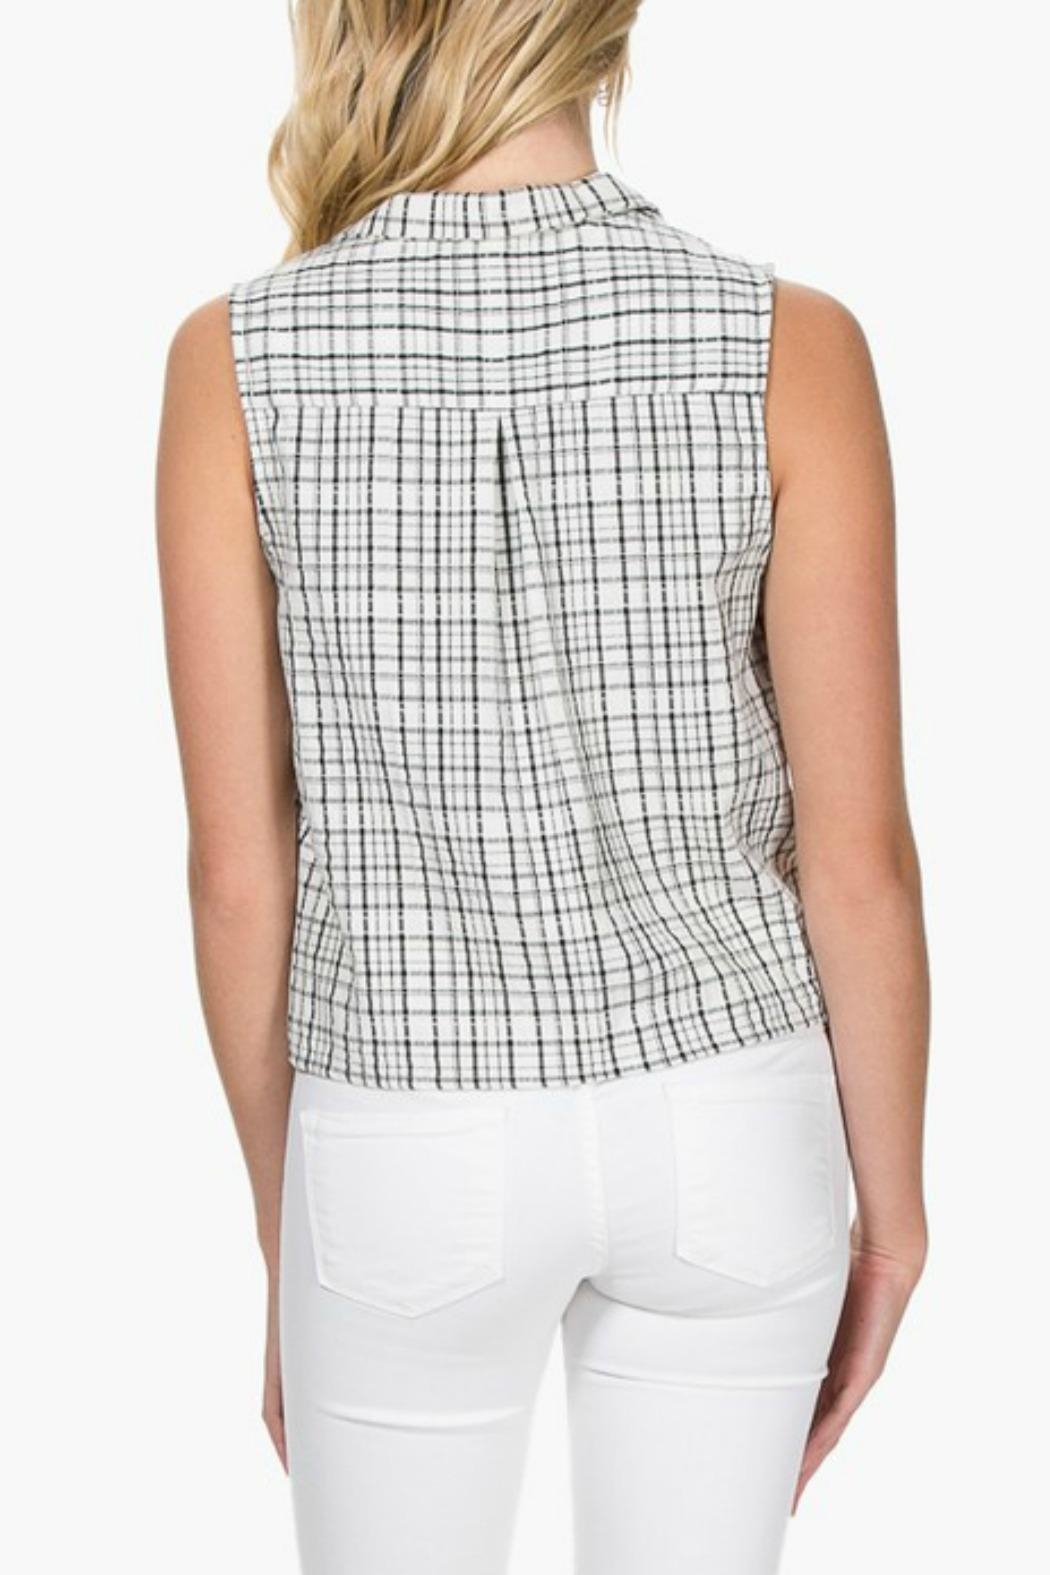 Everly Plaid Front-Tie Top - Front Full Image